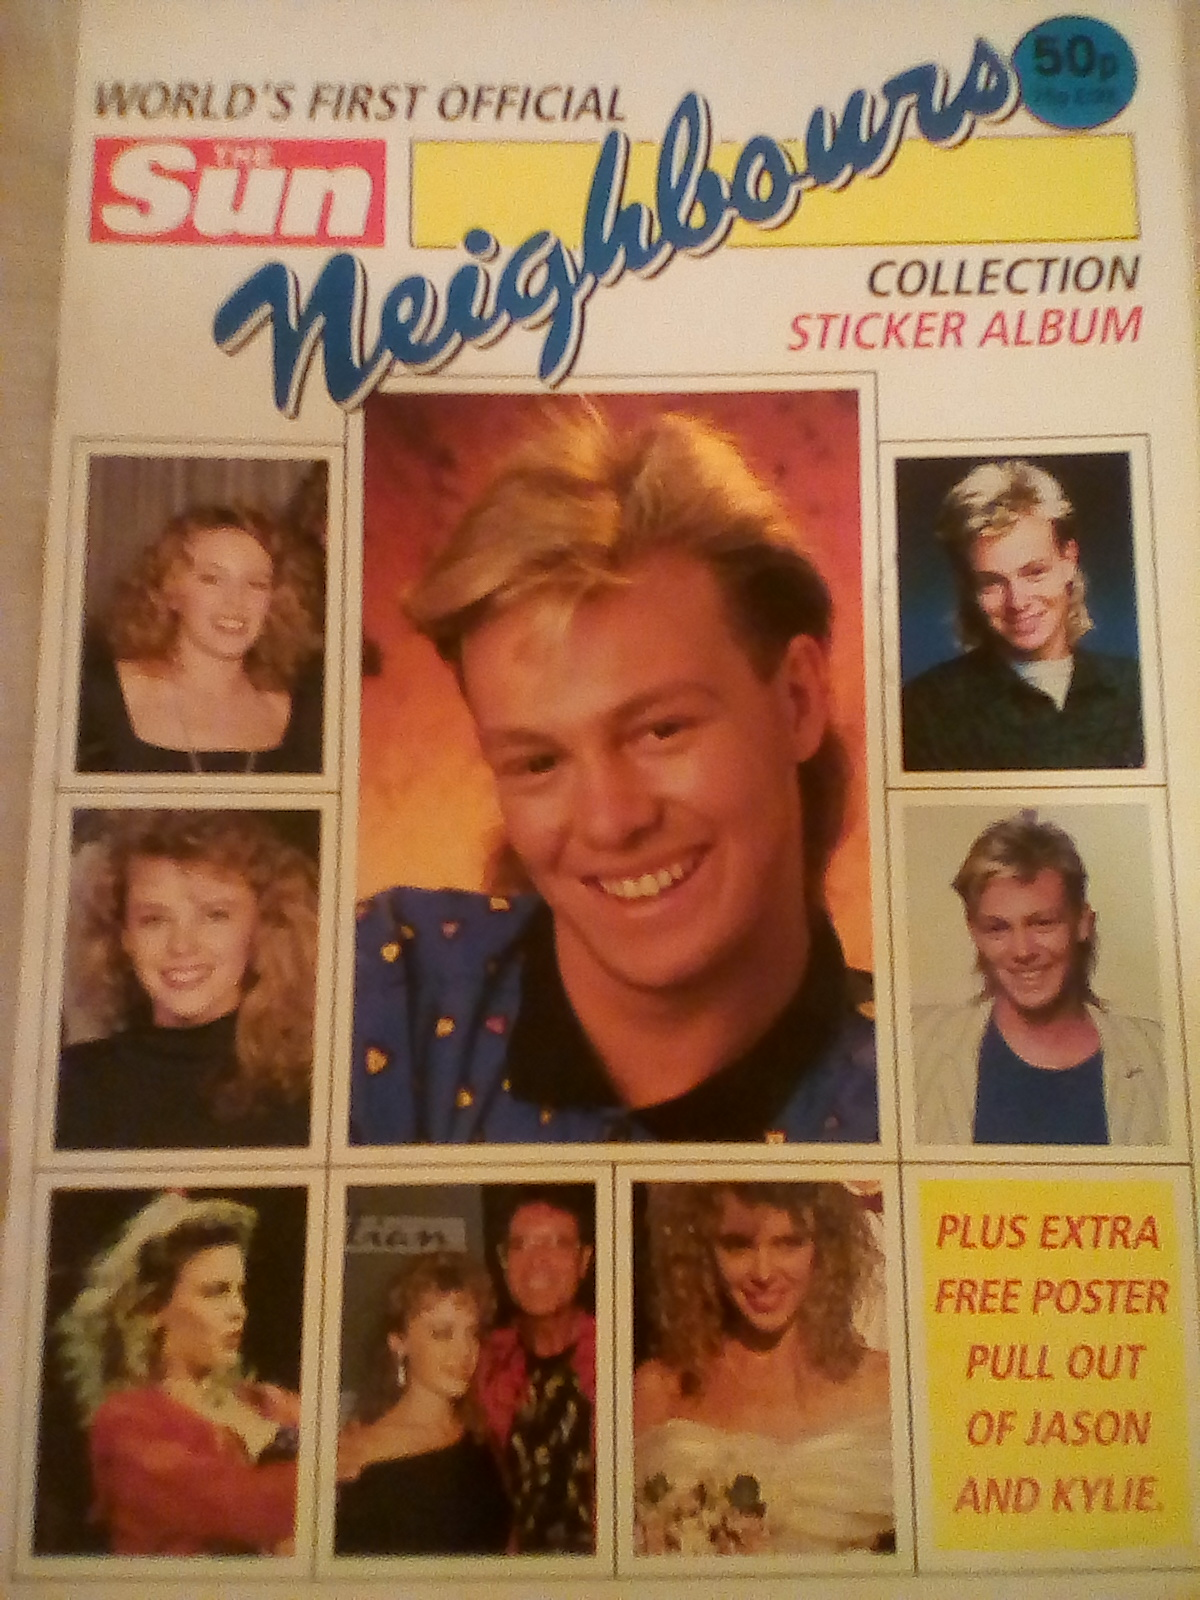 IMG 20180420 215128 Neighbours Sticker Album Number 2! What Stickers Were There To Collect?